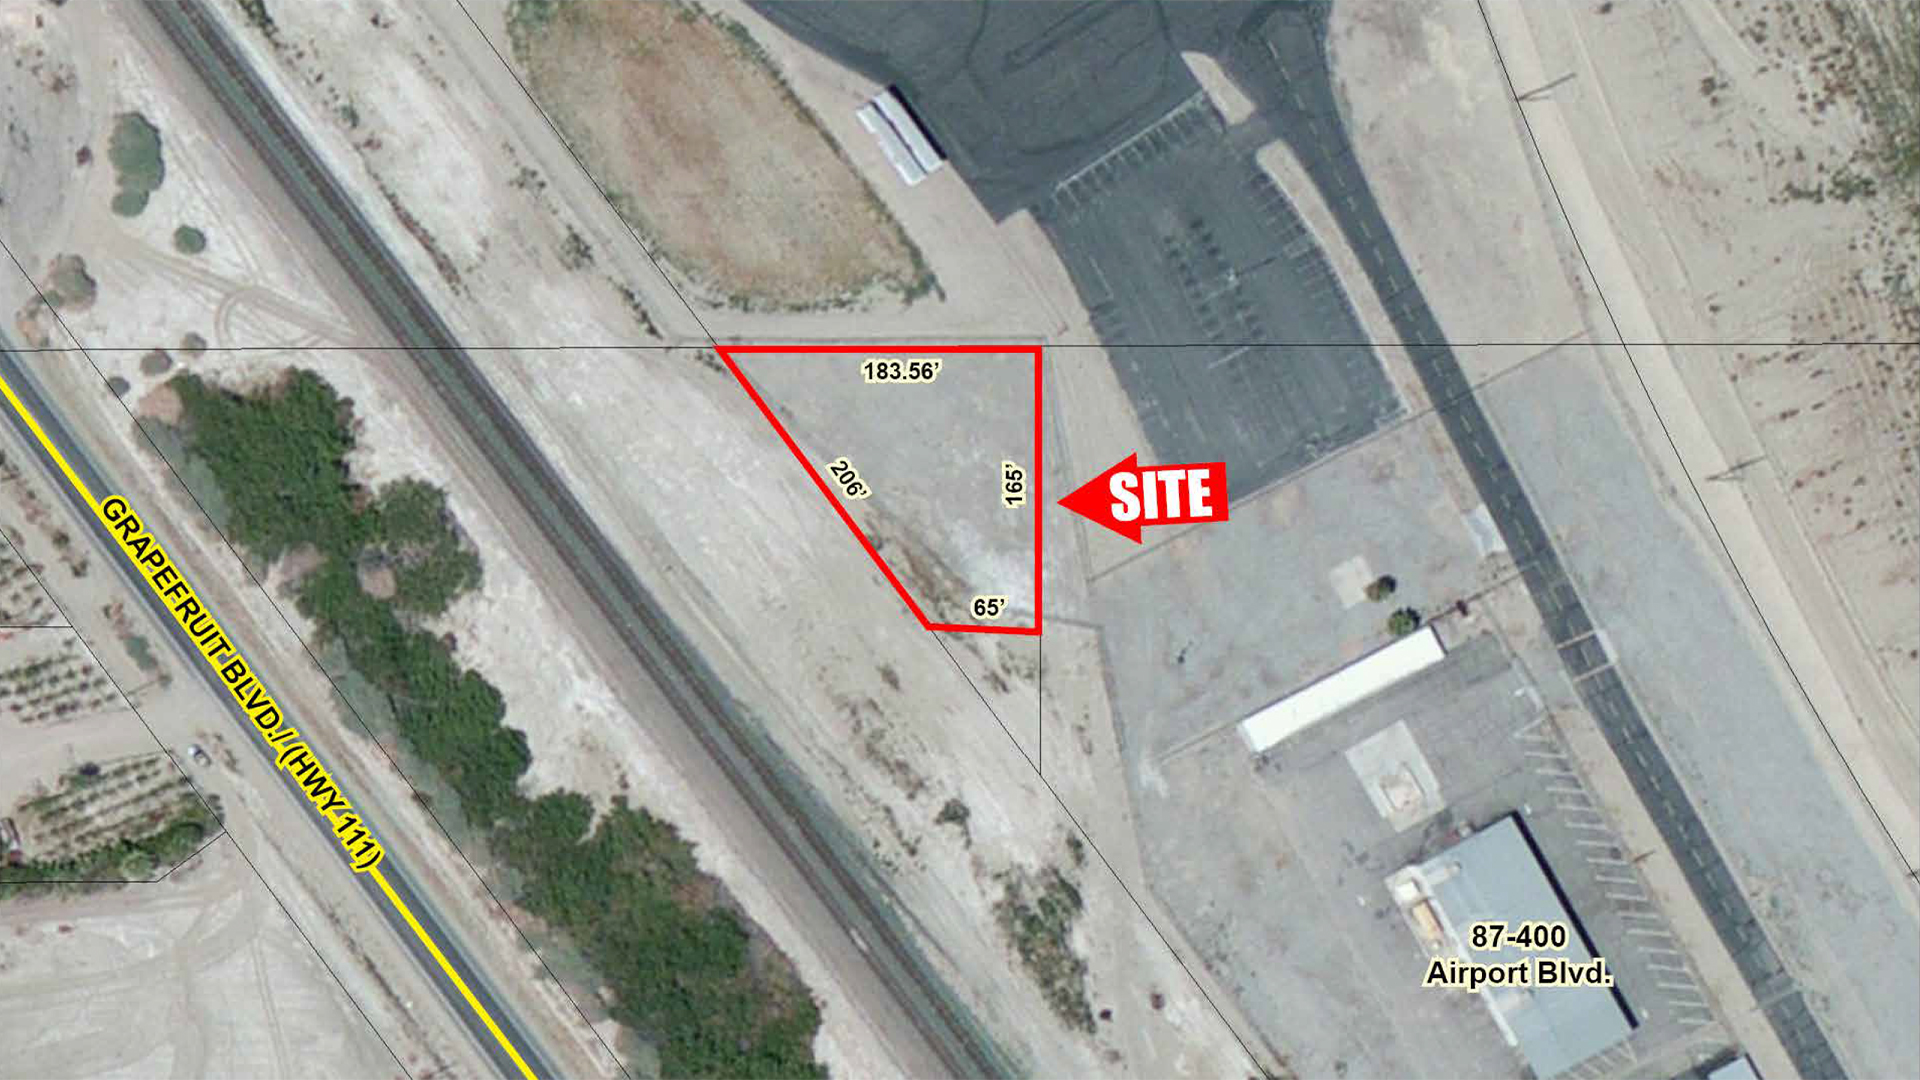 0.47 AC North Airport Blvd, Thermal Zoomed Aerial Web